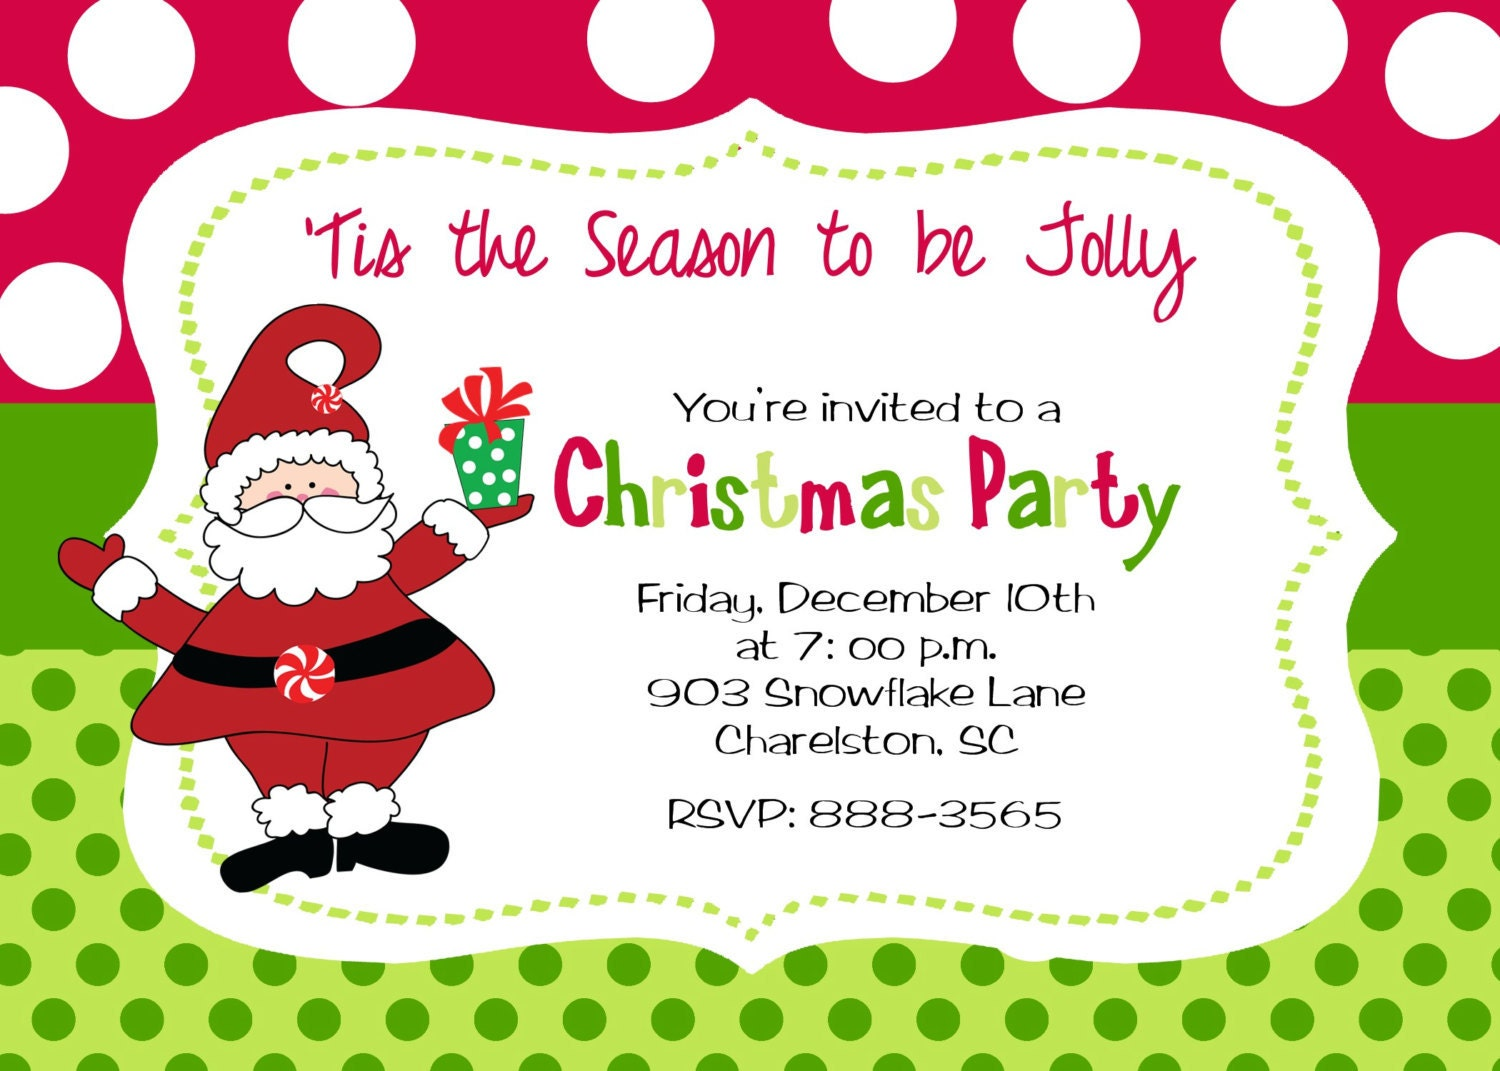 Christmas invitation – Invitations for Christmas Party